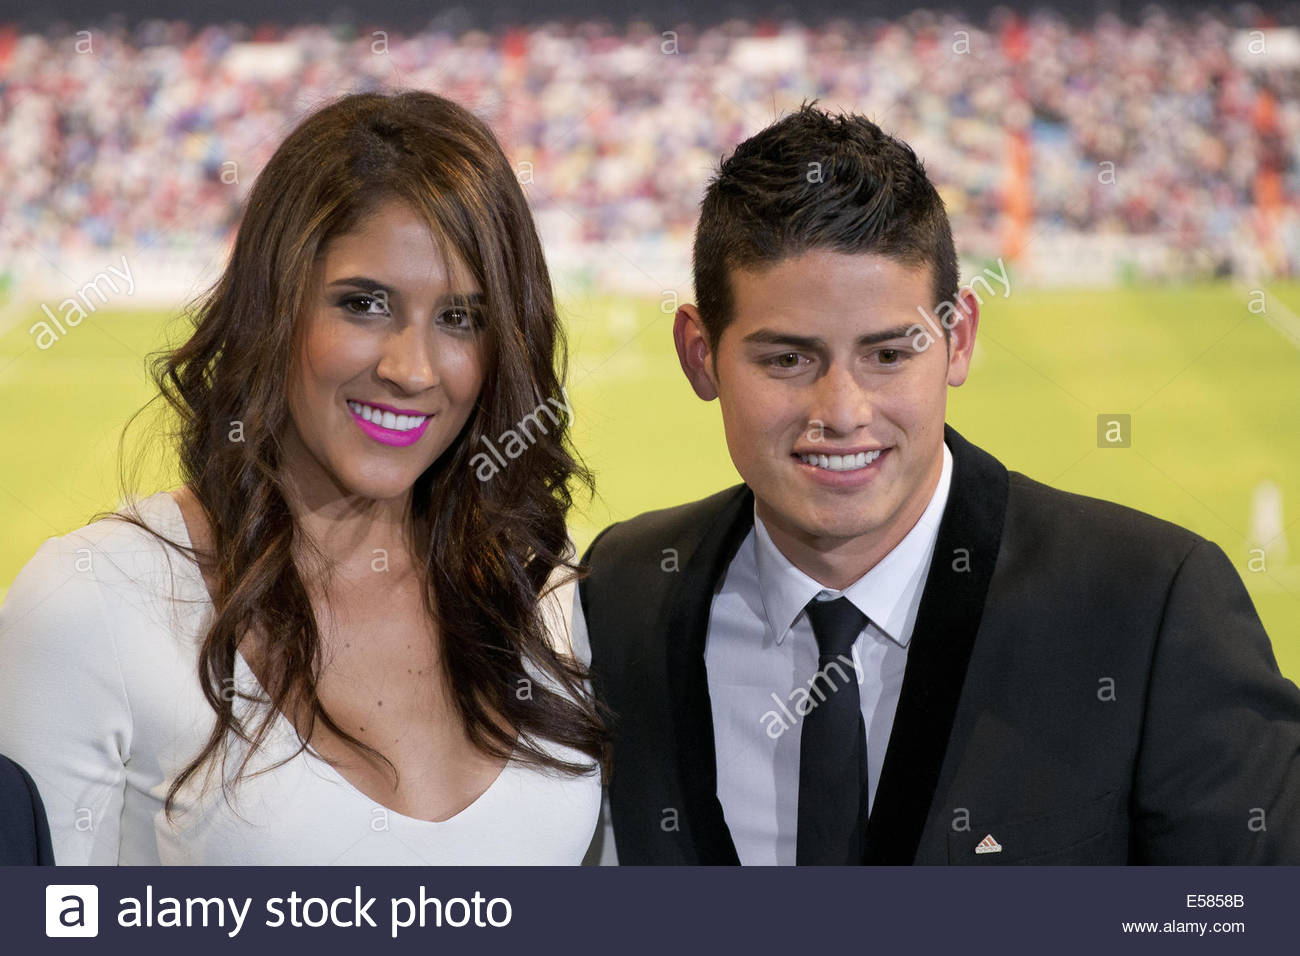 madrid-spain-22nd-july-2014-james-rodriguez-and-his-wife-daniela-ospina-E5858B.jpg